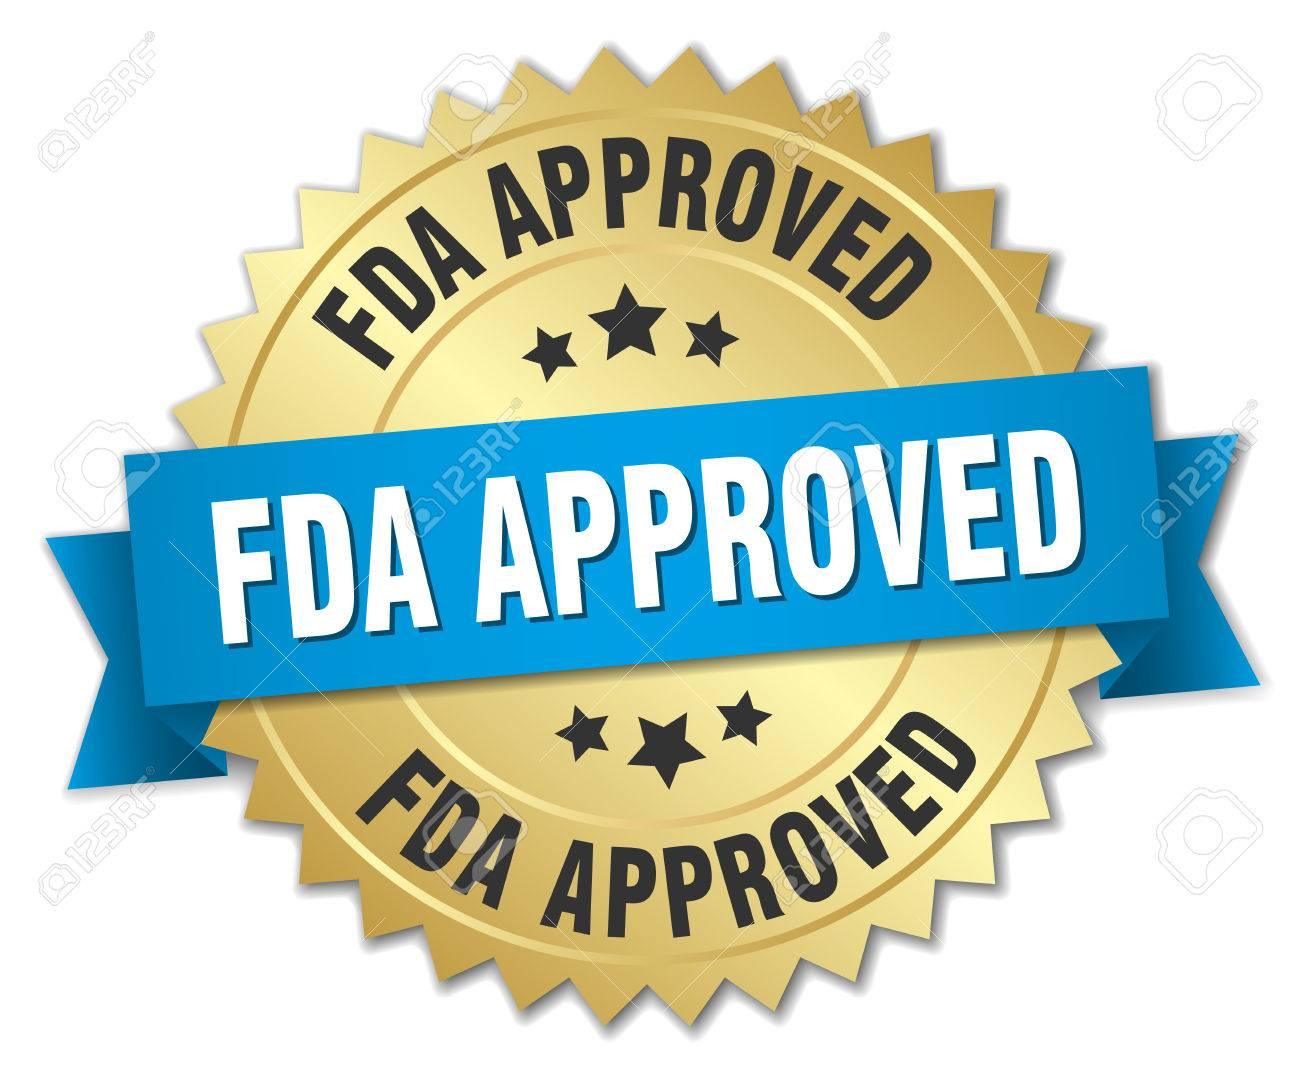 fda approved round isolated gold badge - 77698847